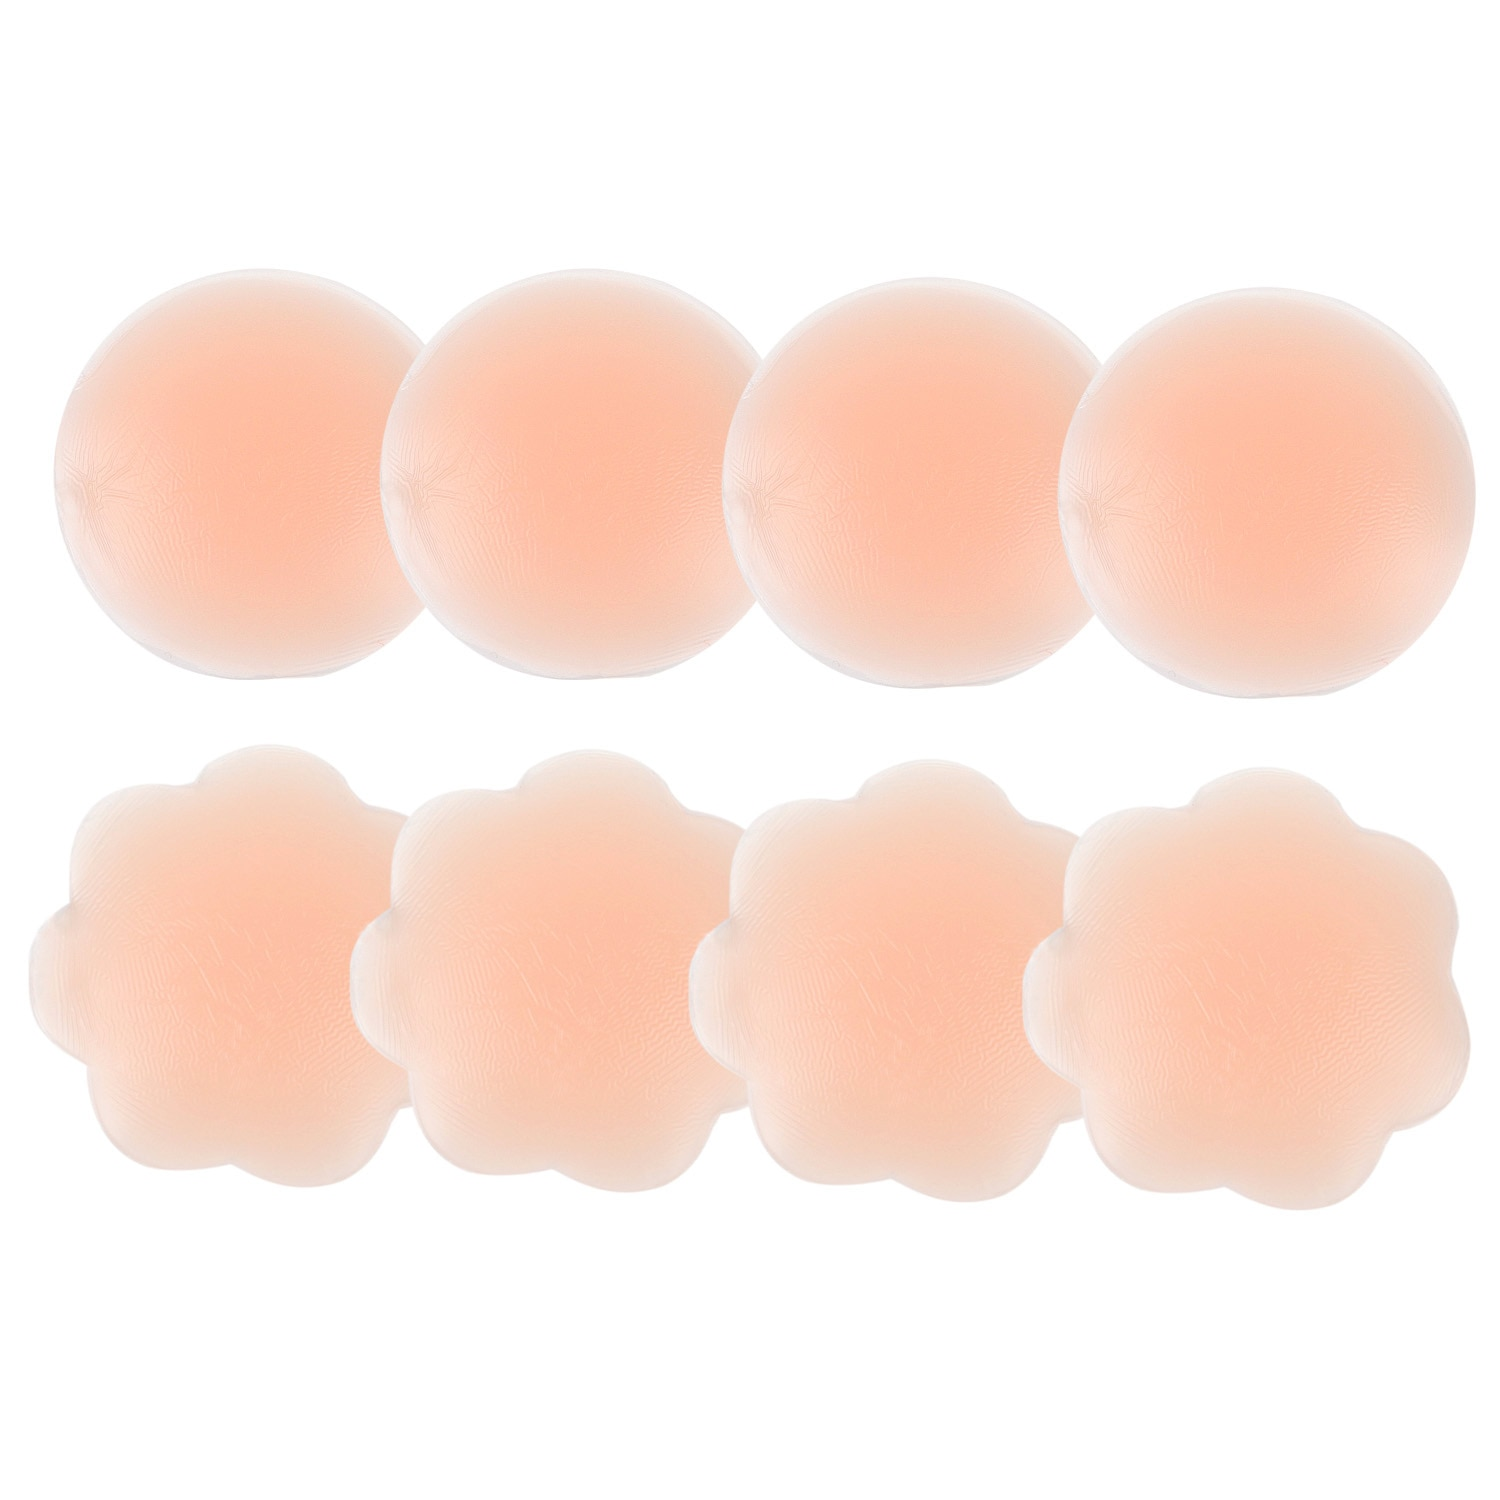 reusable-women-breast-petals-lift-nipple-cover-invisible-petal-adhesive-strapless-backless-stick-on-bra-silicone-nipple-pad